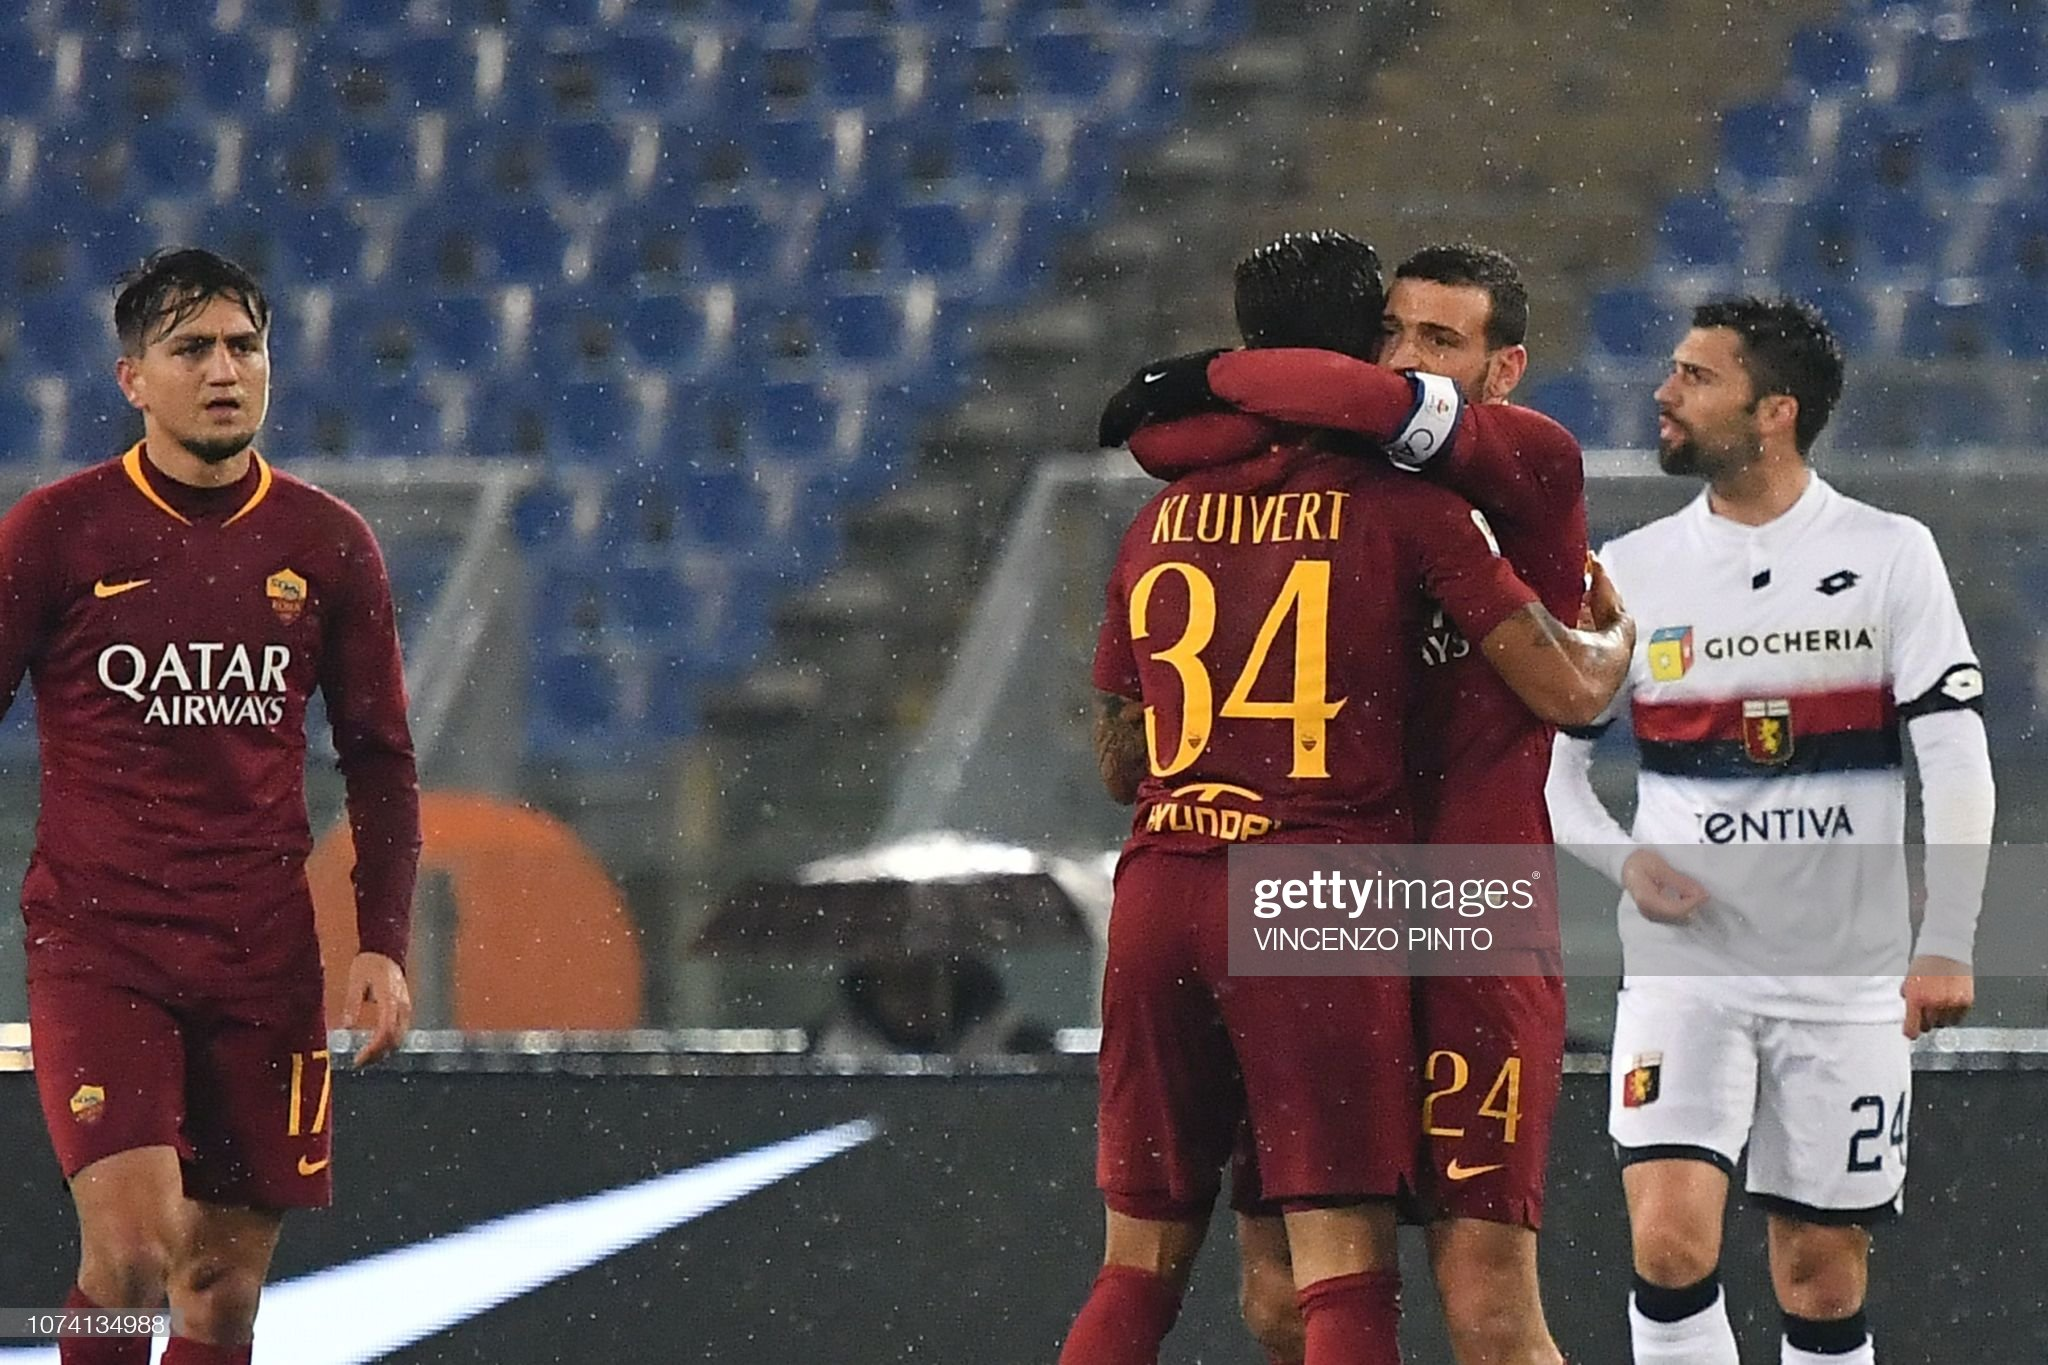 ¿Cuánto mide Alessandro Florenzi? - Real height Roma-italian-midfielder-alessandro-florenzi-embraces-as-roma-dutch-picture-id1074134988?s=2048x2048